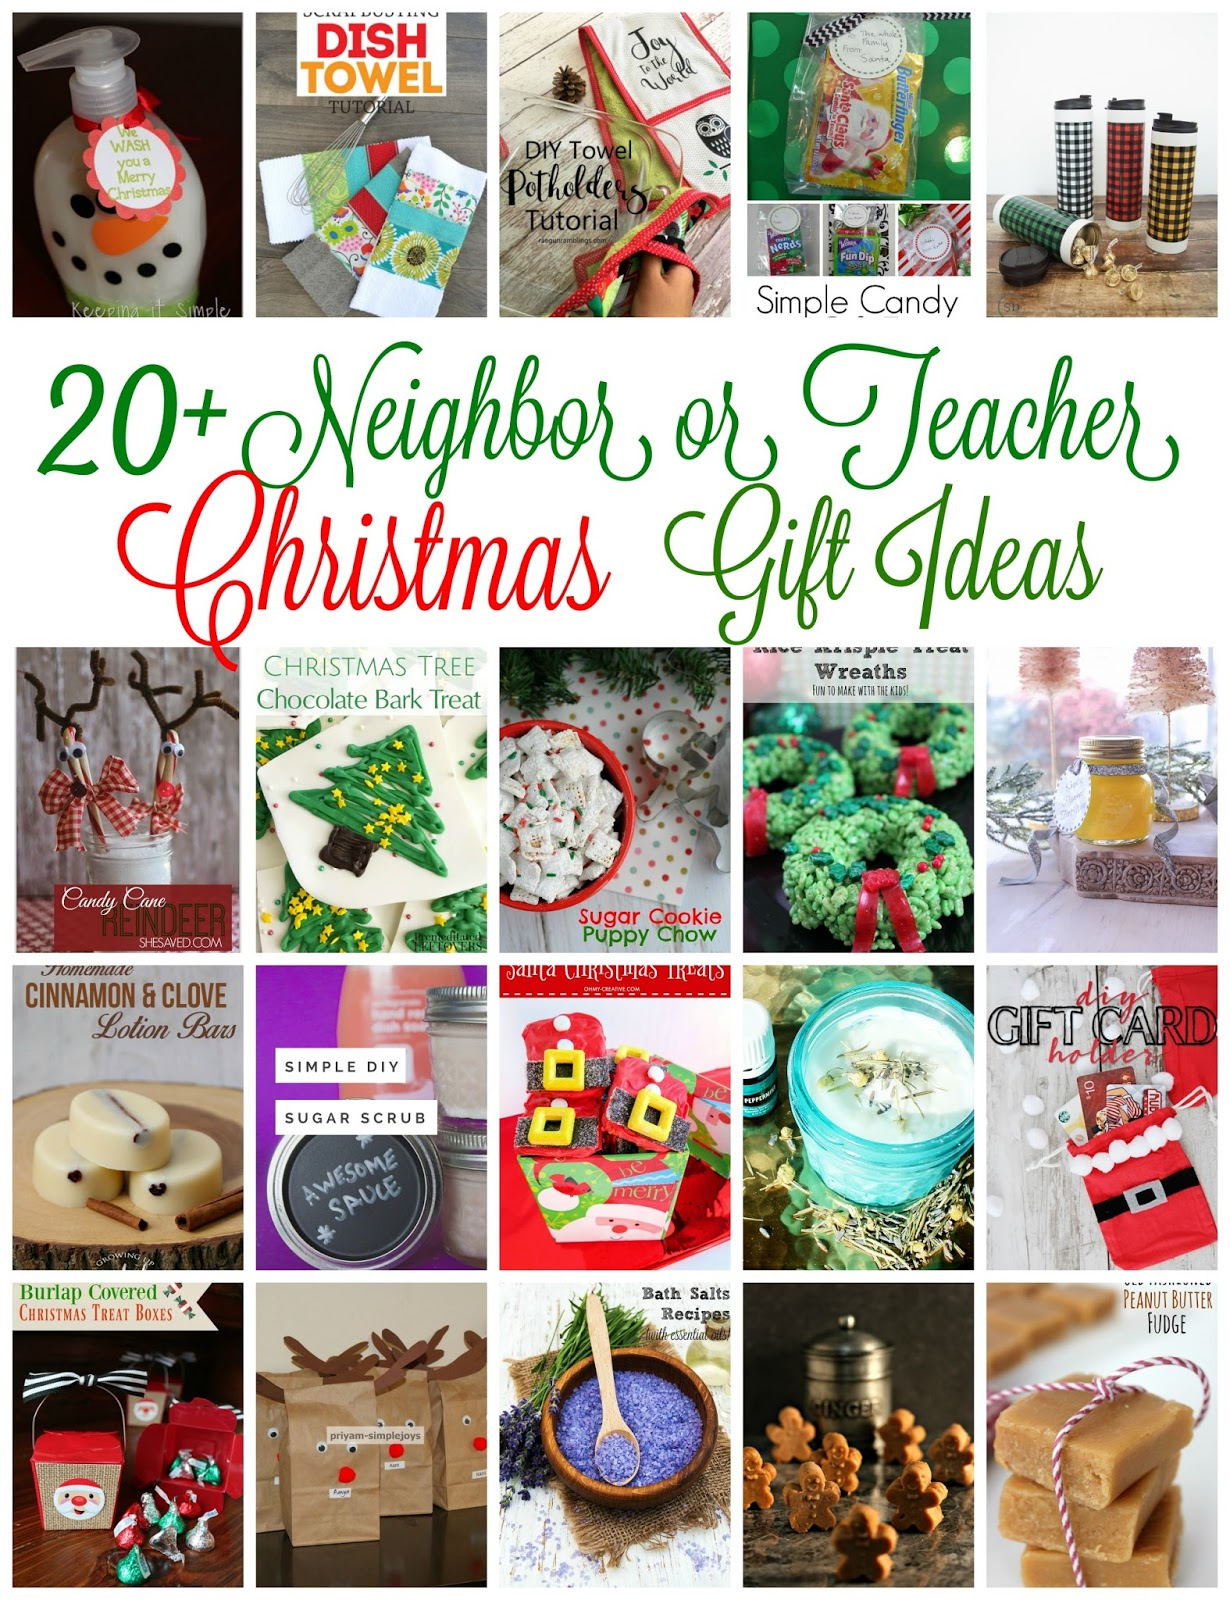 neighbor and teacher gift ideas DIY tutorials